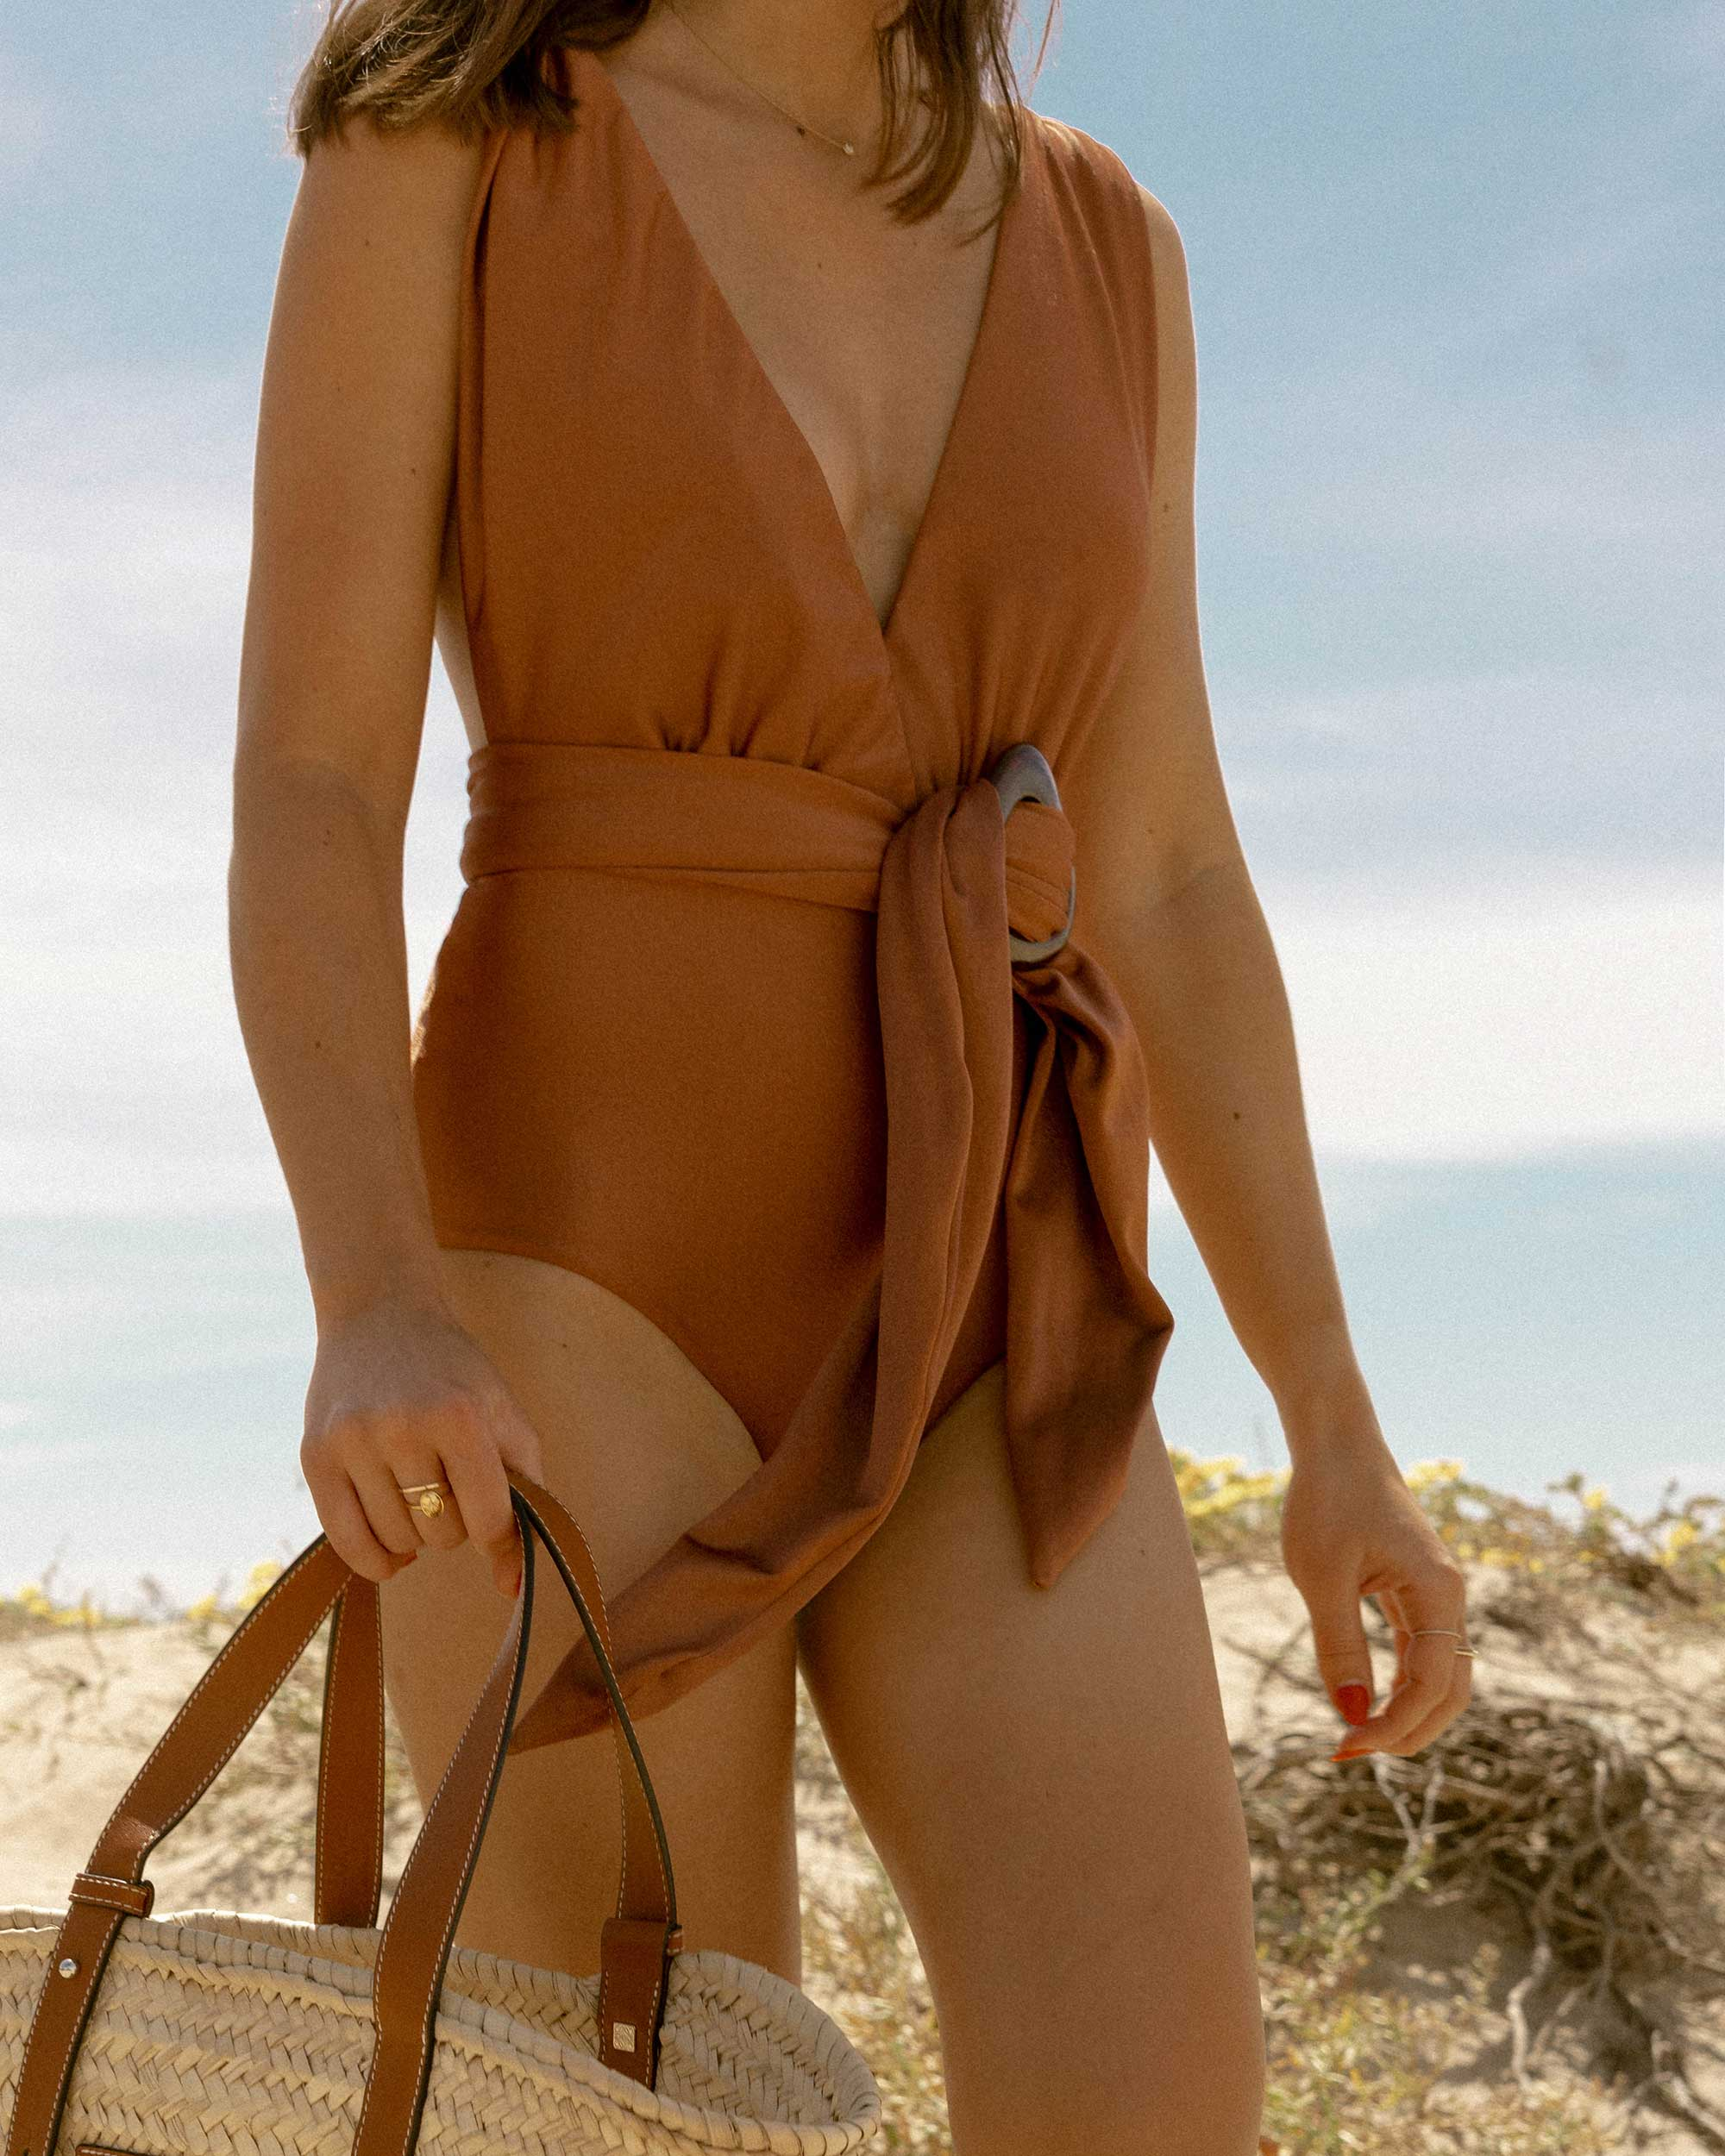 Oceanside in Newport Beach - Patbo solid brown belted swimsuit and Loewe small raffia basket tote bag for the perfect summer beach look